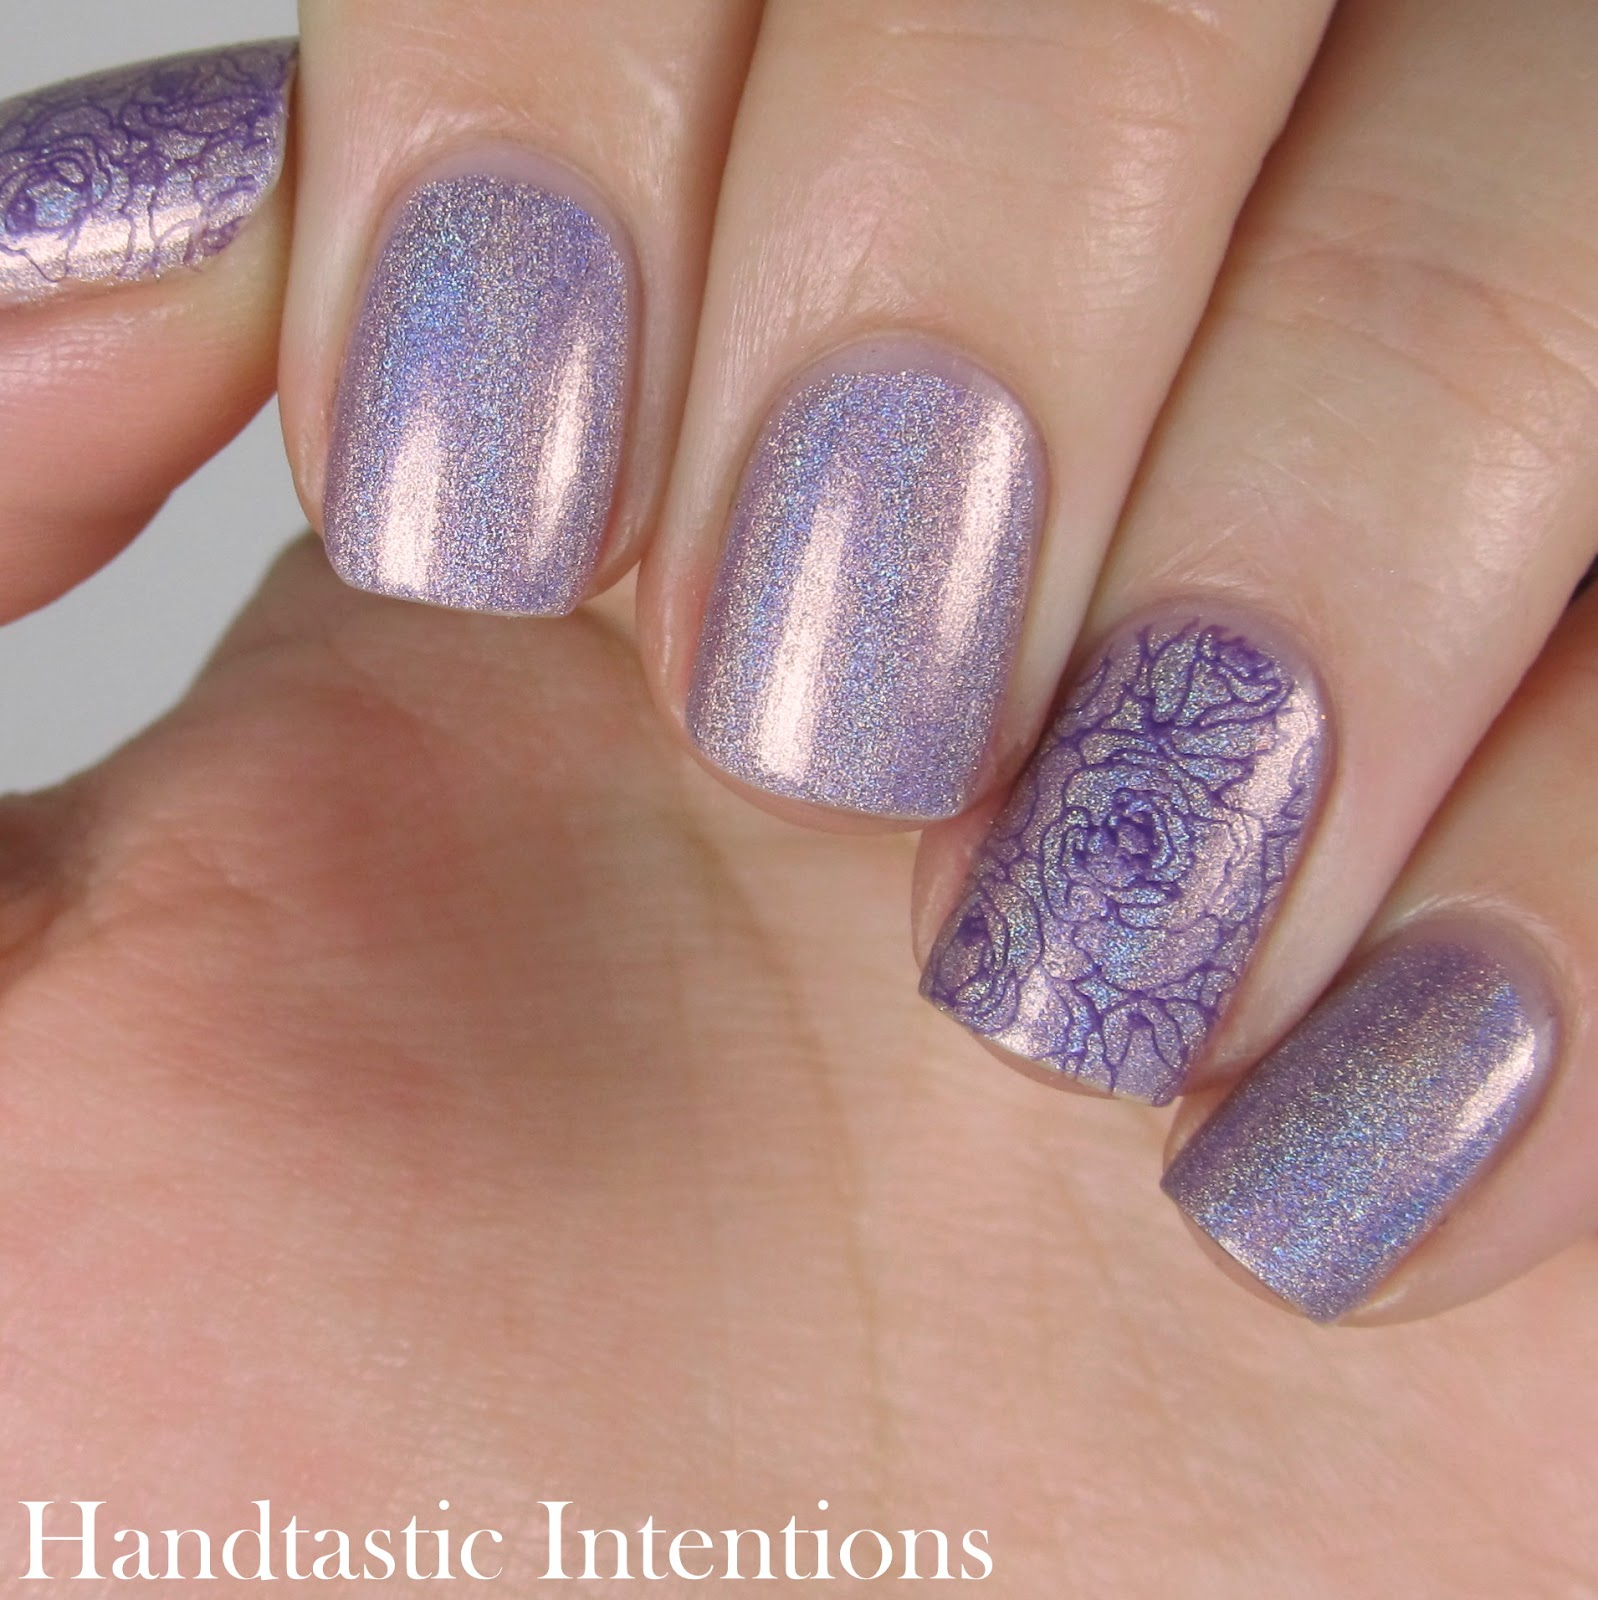 KBShimmer-Thistle-Be-The-Day-Review